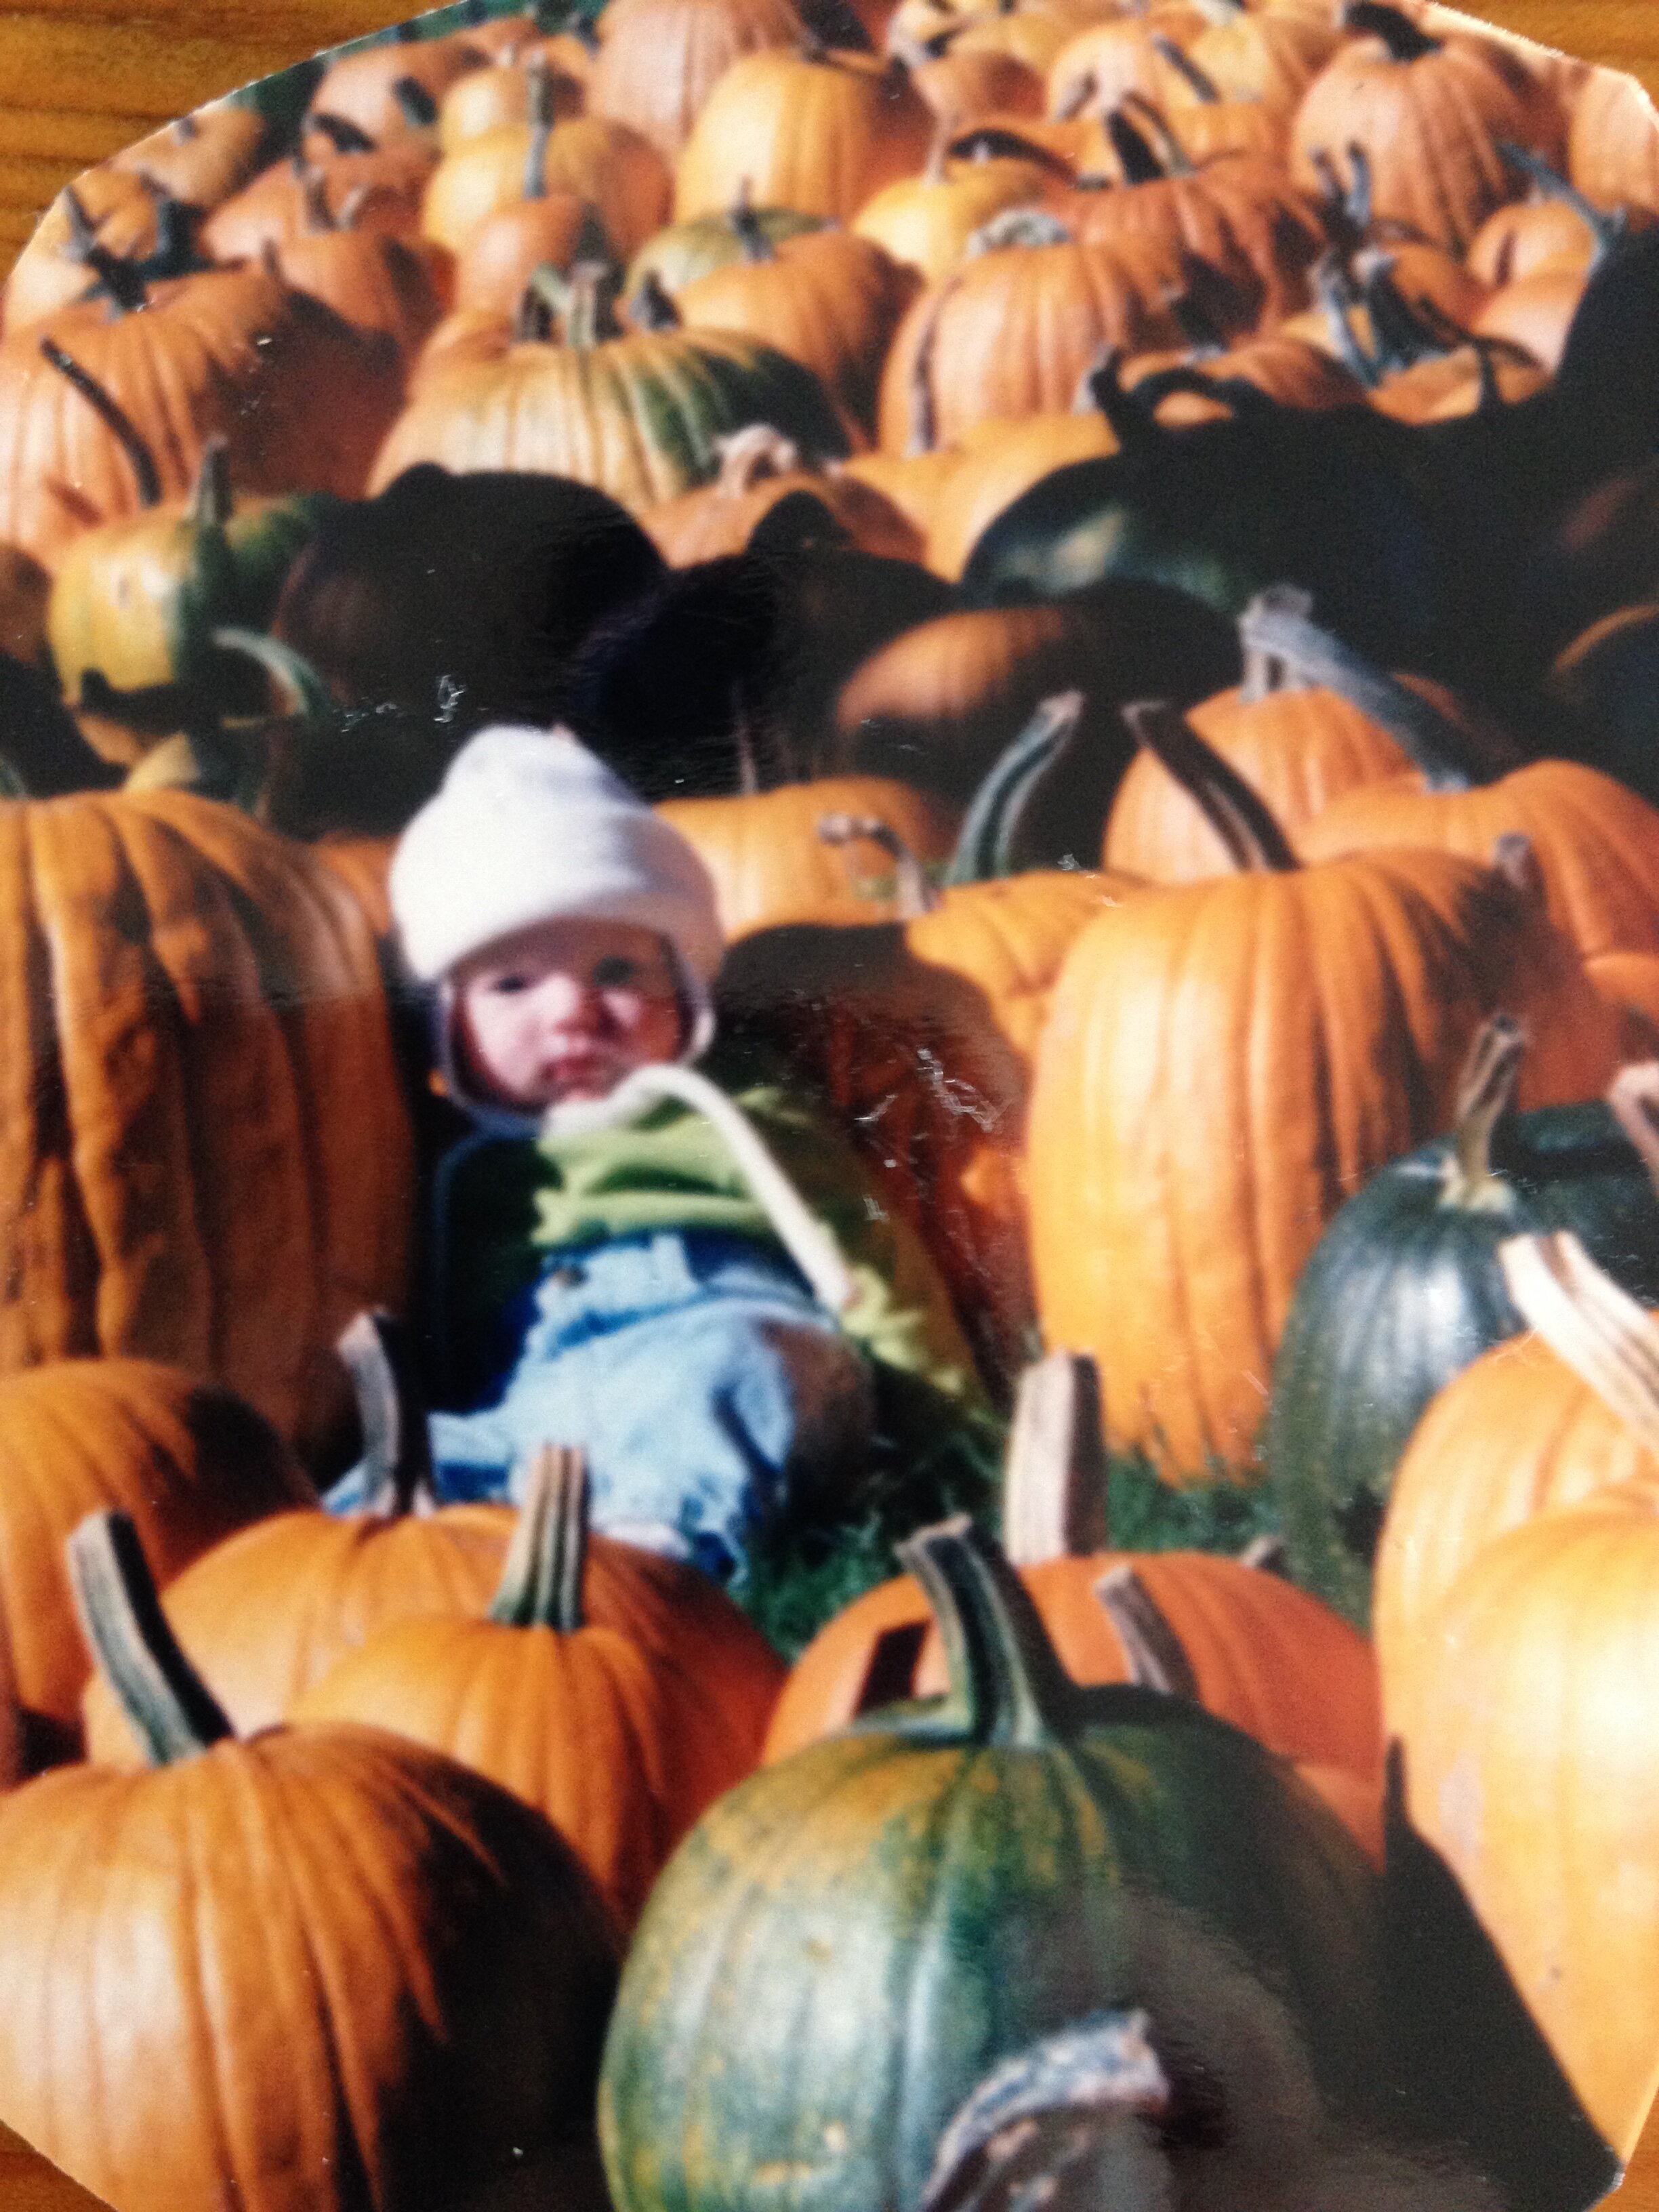 Till Gabrielle was about 16 years old we took a picture of her in a pumpkin patch. Here is her first one.